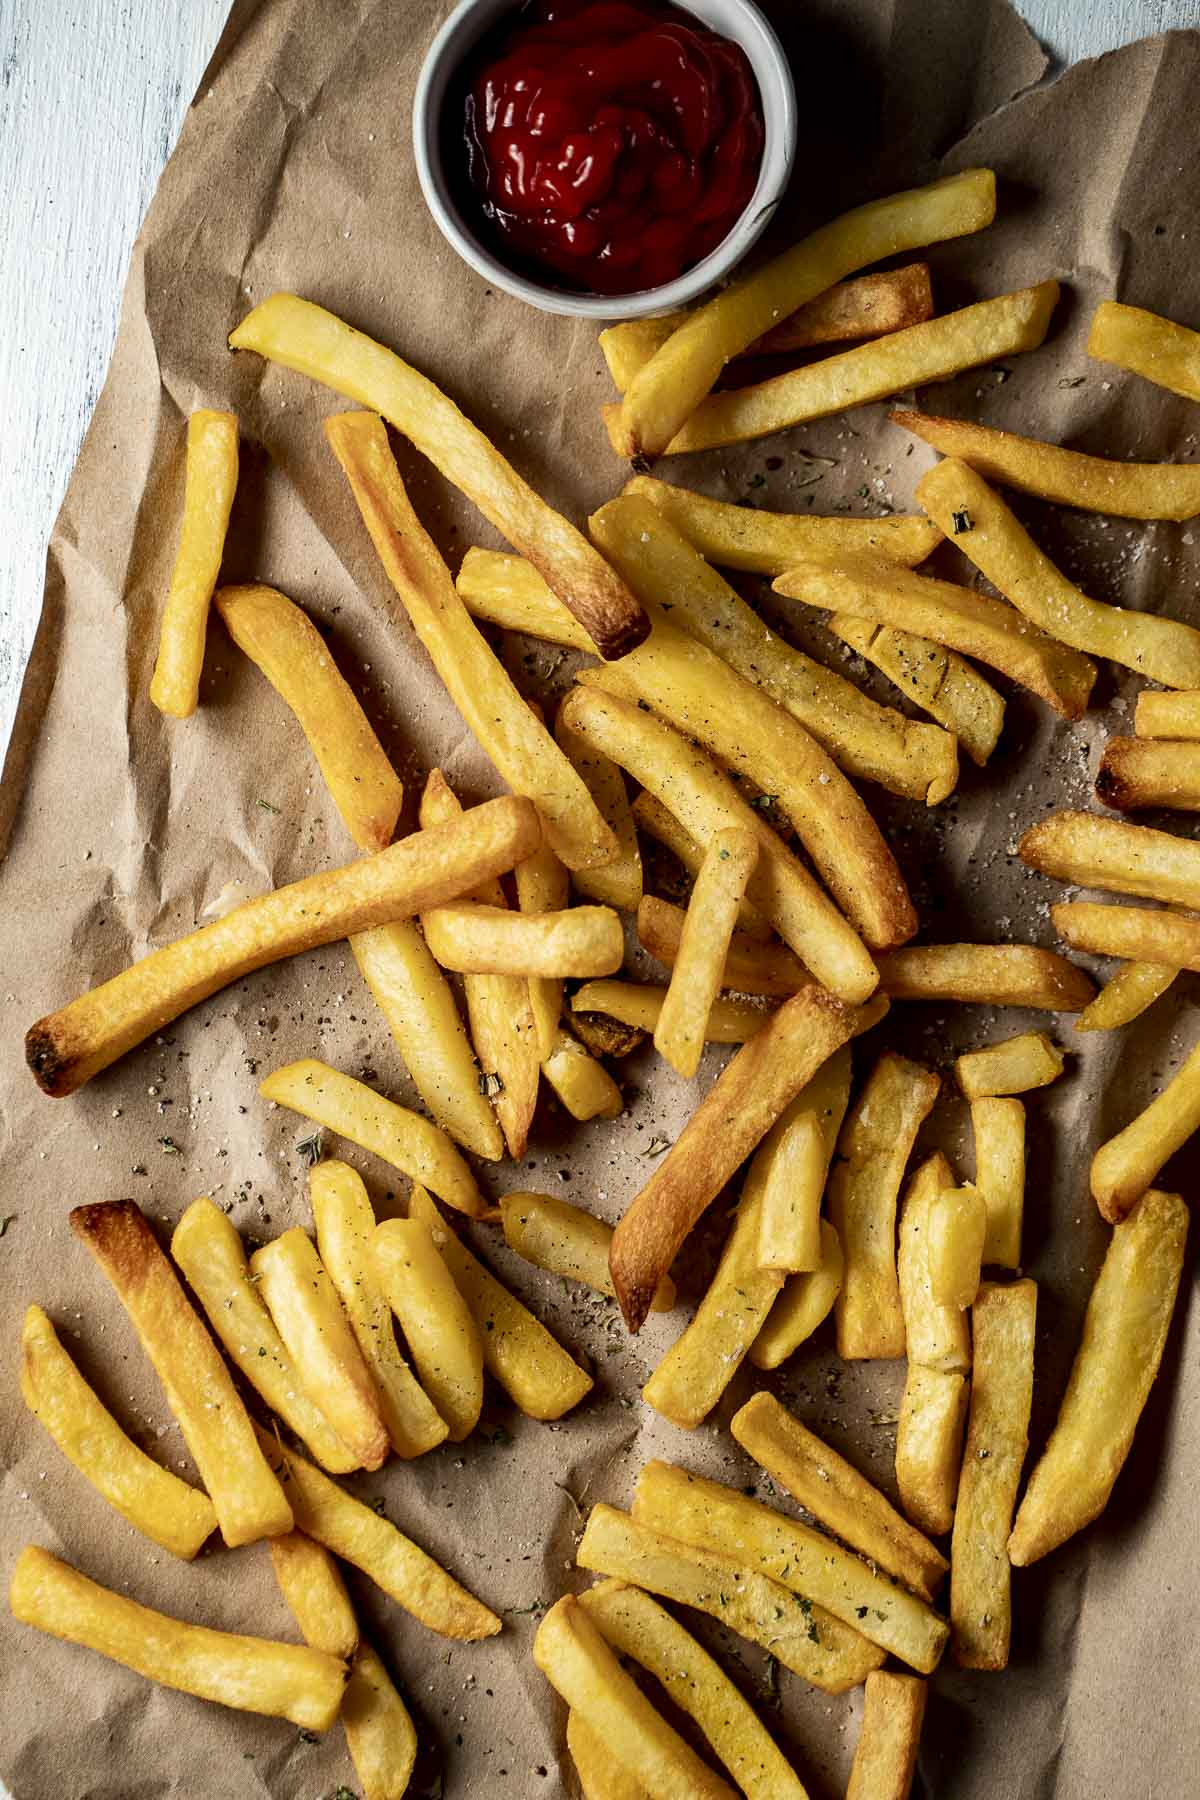 Golden brown french fries arranged on a sheet of brown paper with ketchup on the side.